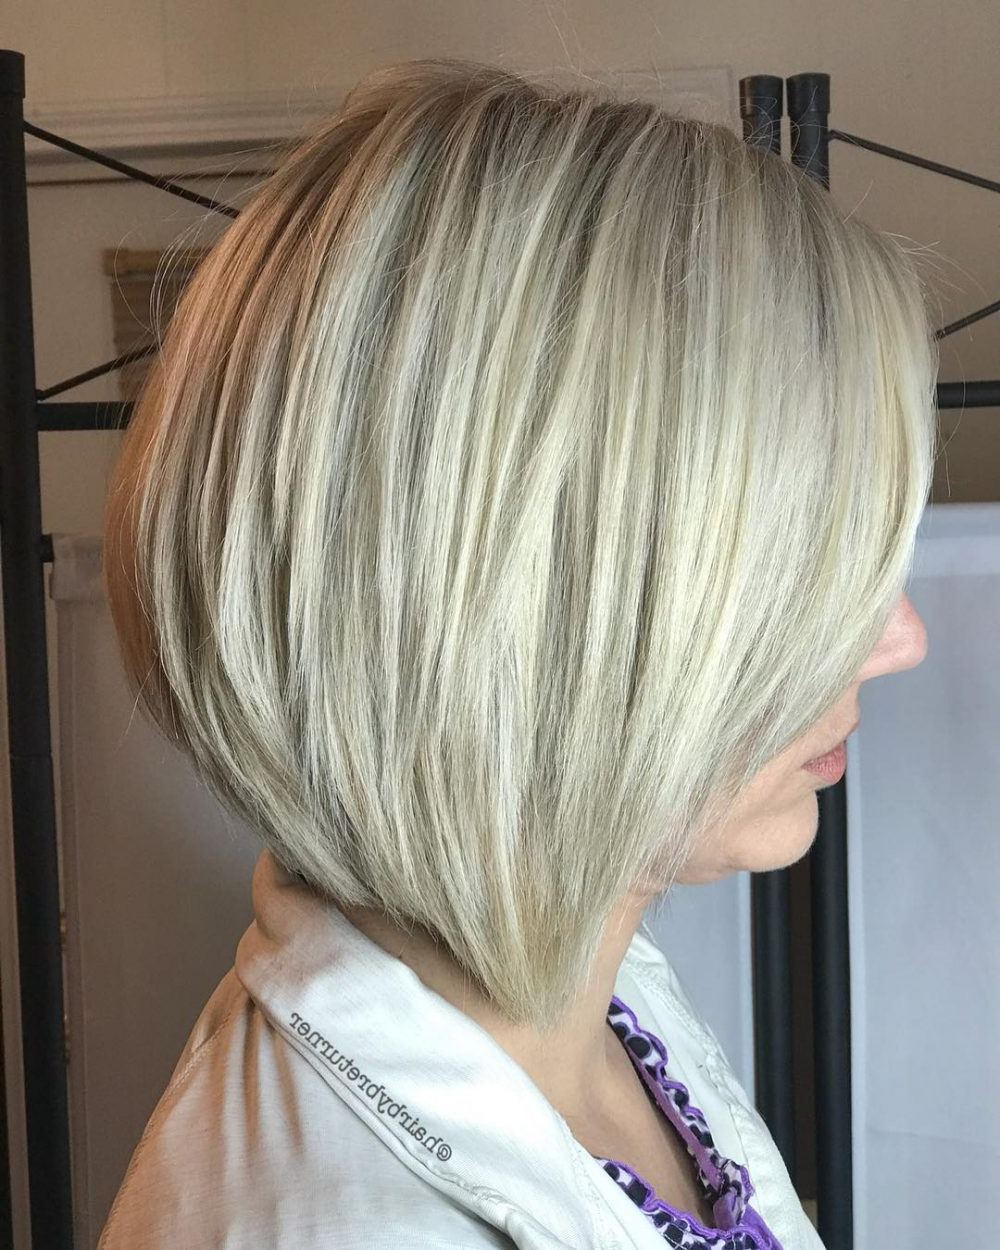 42 Sexiest Short Hairstyles For Women Over 40 In 2018 With Regard To Short Funky Hairstyles For Over  (View 4 of 25)